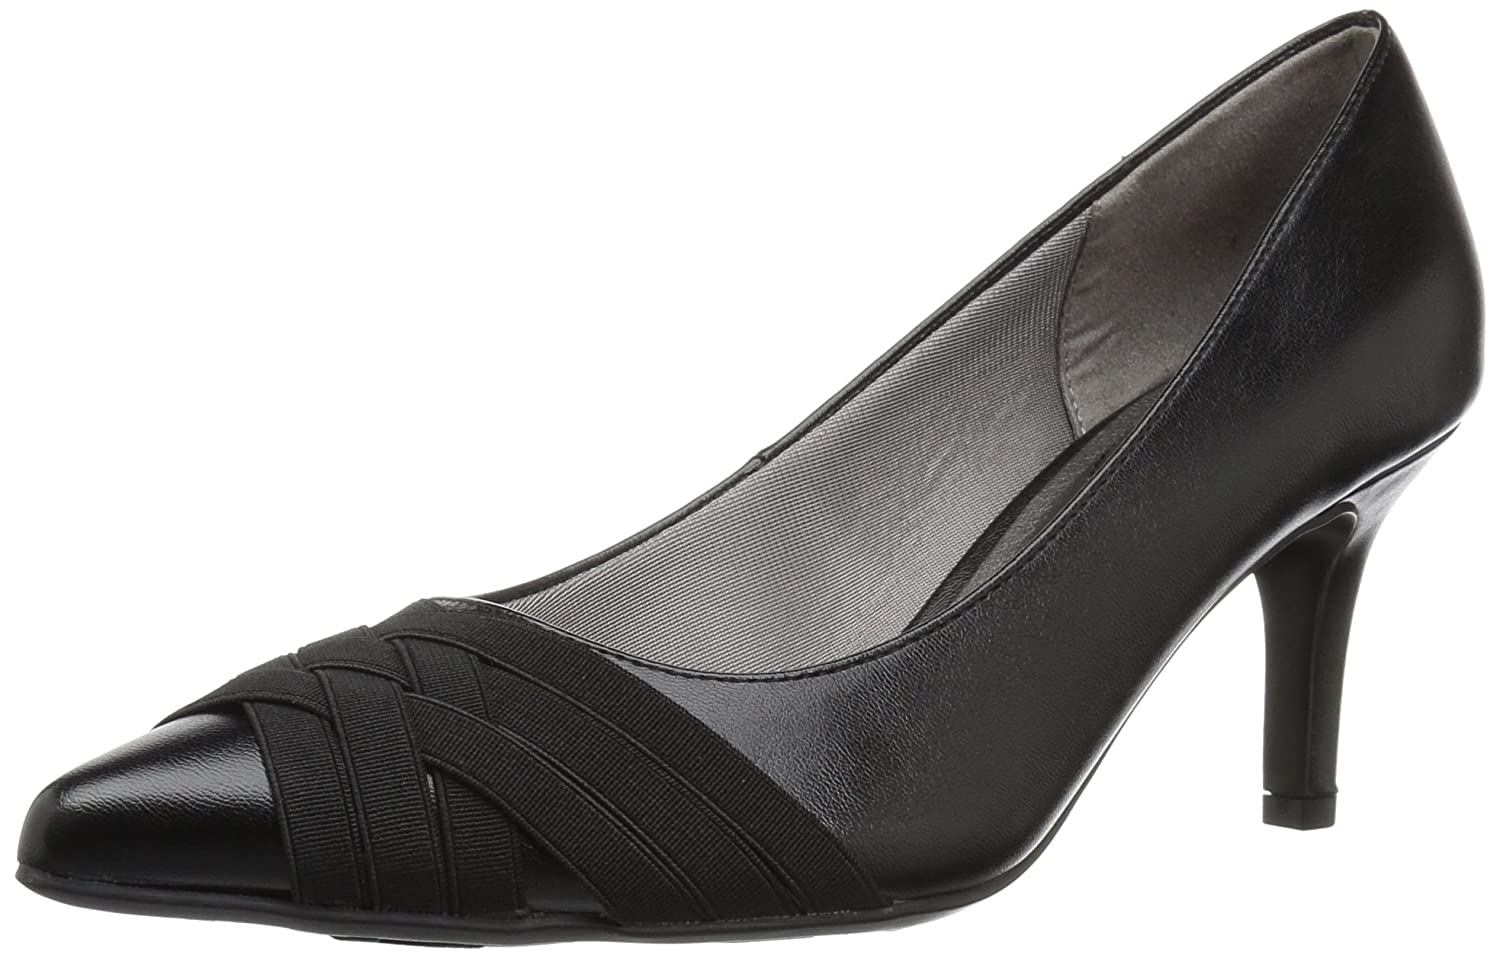 LifeStride Women's Sentiment Dress Pump B06XRSTXL6 10 W US|Black